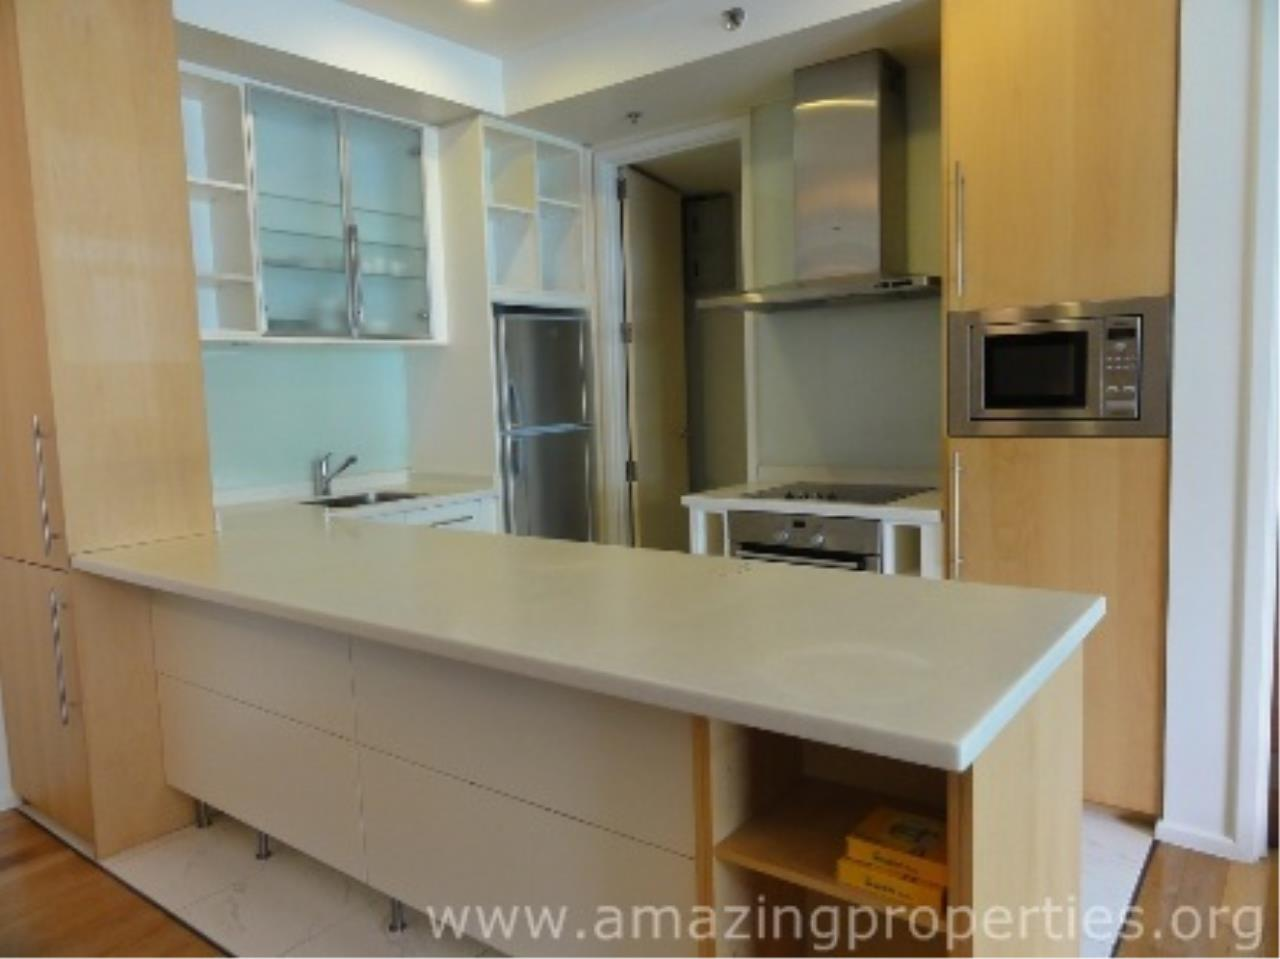 Amazing Properties Agency's 2 bedrooms Apartment for rent/sale 8